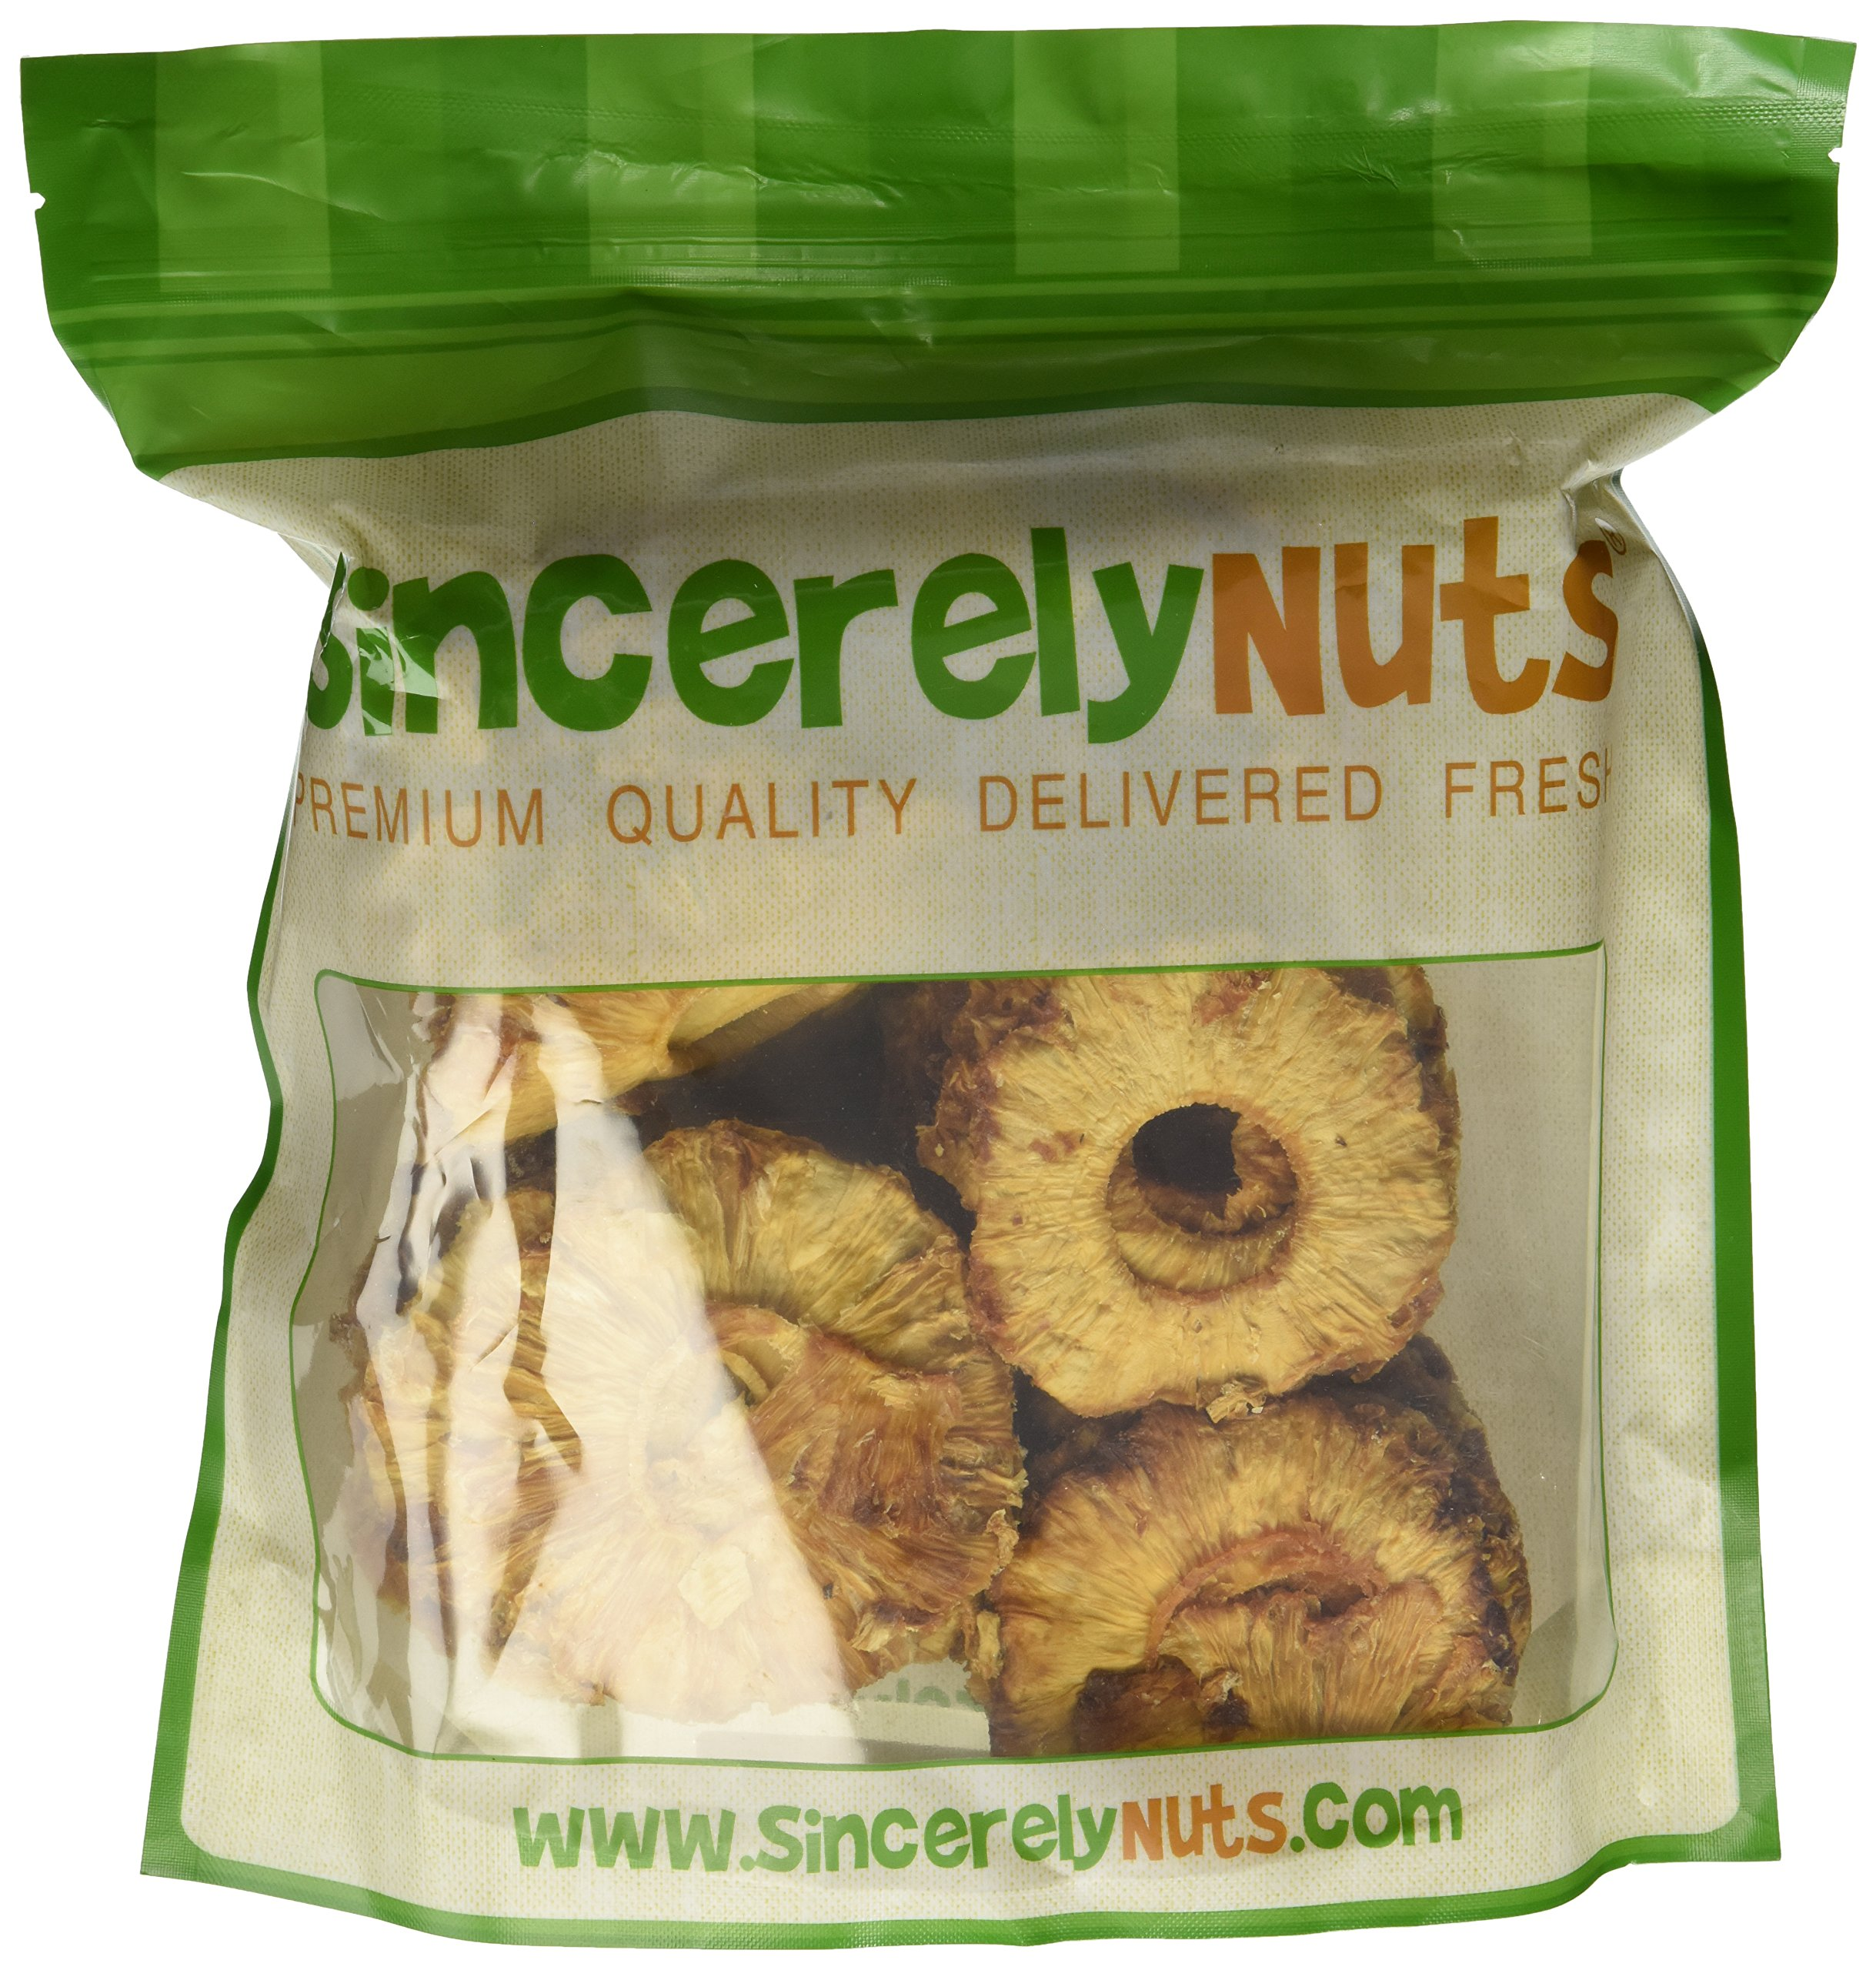 Sincerely Nuts Dried Natural Pineapple with No Sugar - Two Lb. Bag - Irresistibly Tasty - Unmatched Freshness - Insanely Healthy - Kosher Certified